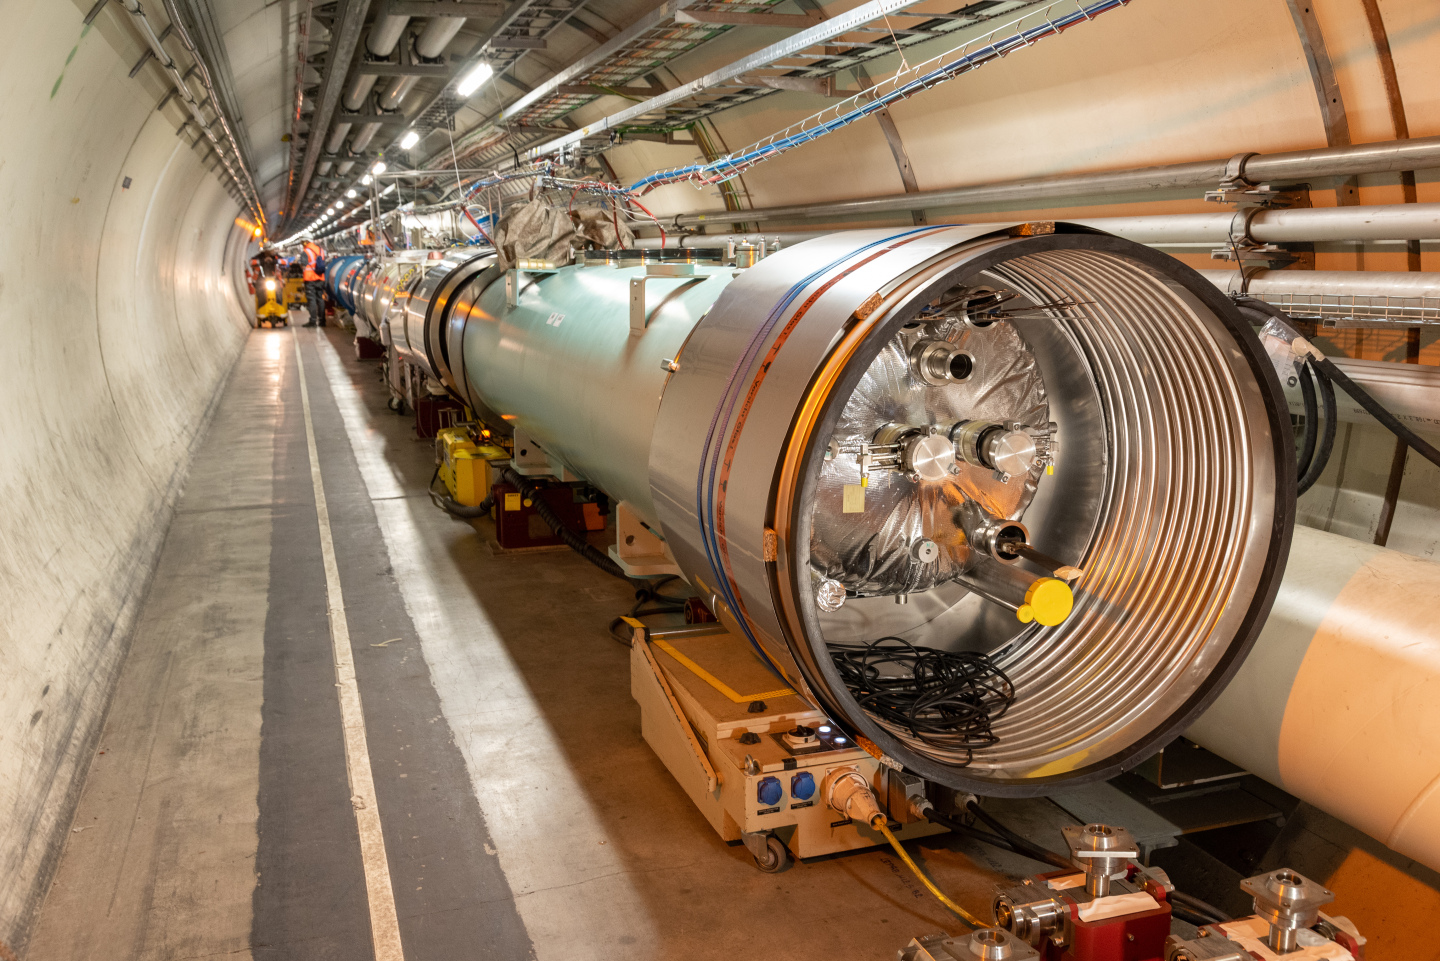 LHC,High-Luminosity LHC,connection,cryostats,bypass,cmi